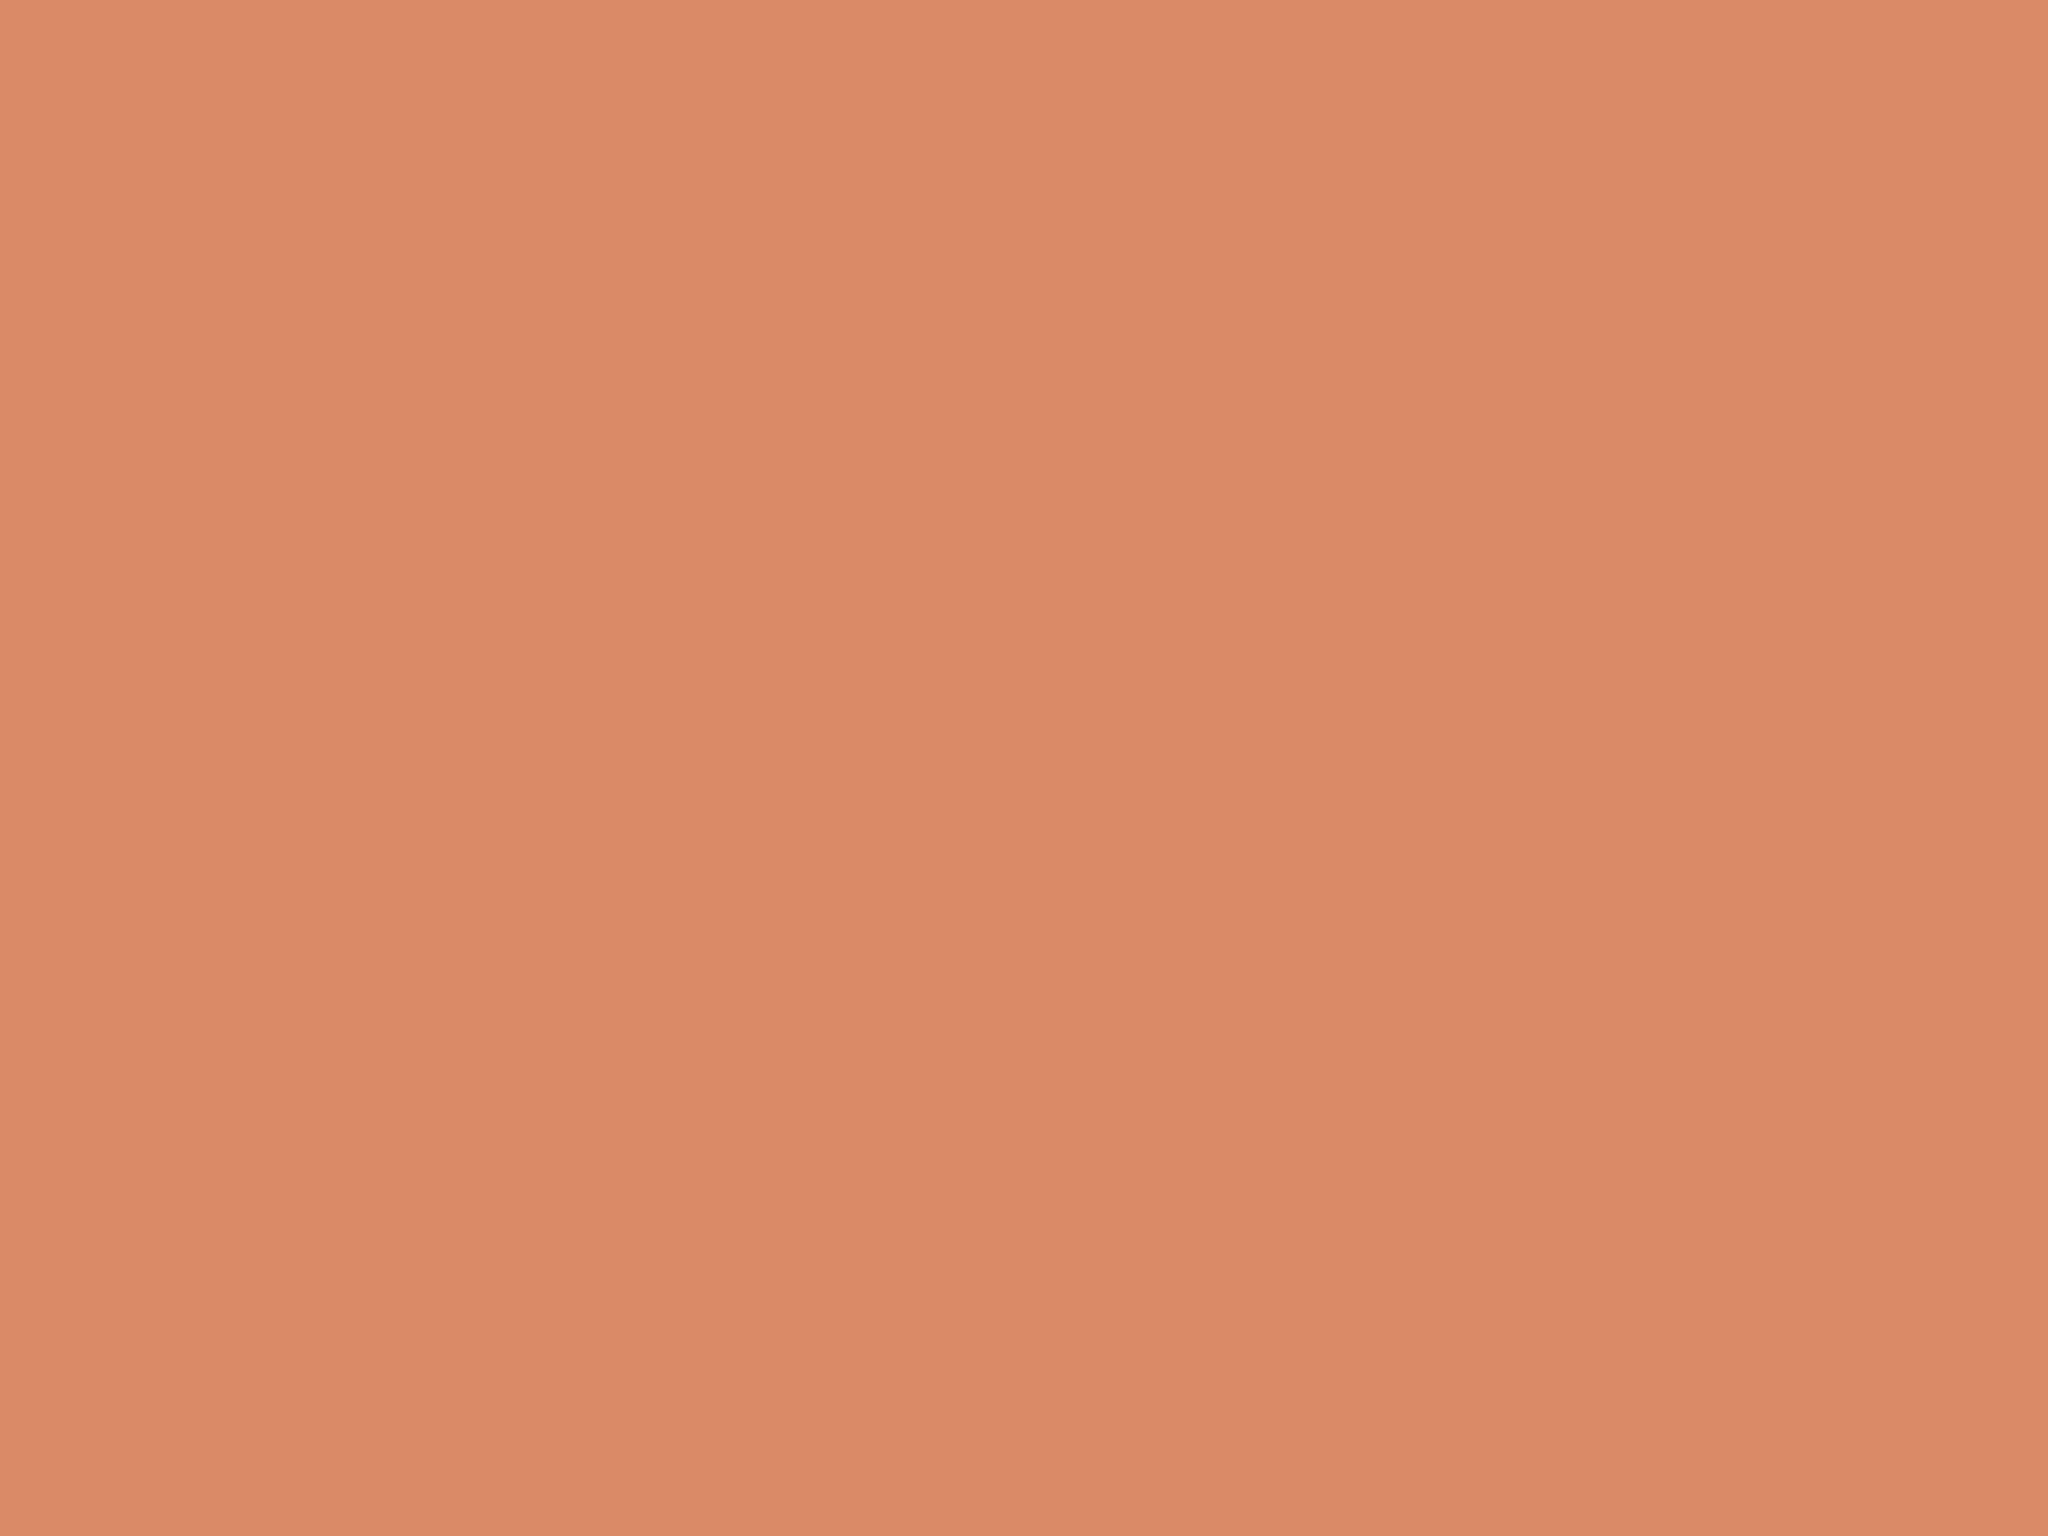 2048x1536 Copper Crayola Solid Color Background